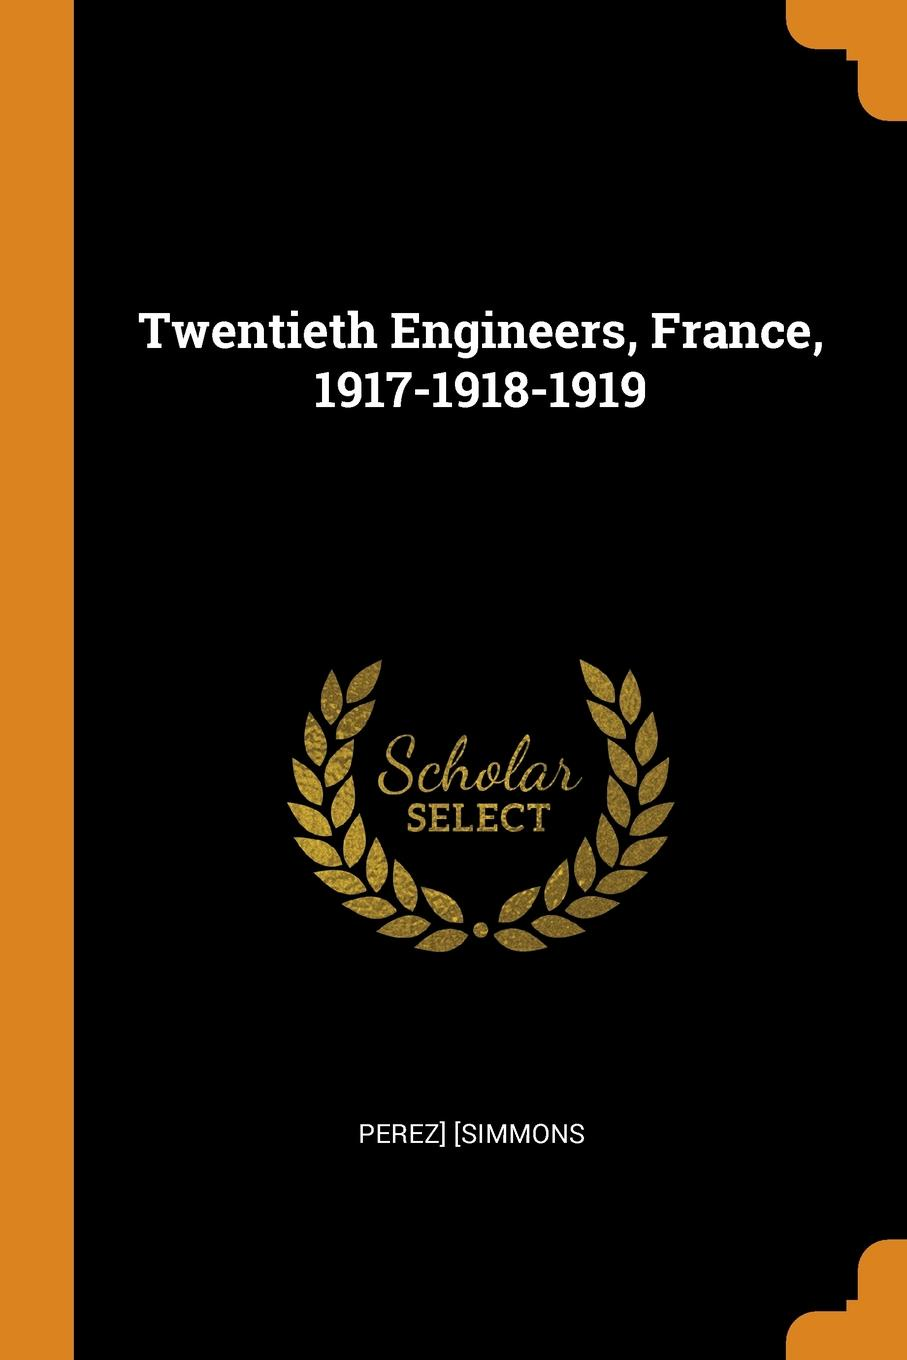 Perez] [Simmons Twentieth Engineers, France, 1917-1918-1919